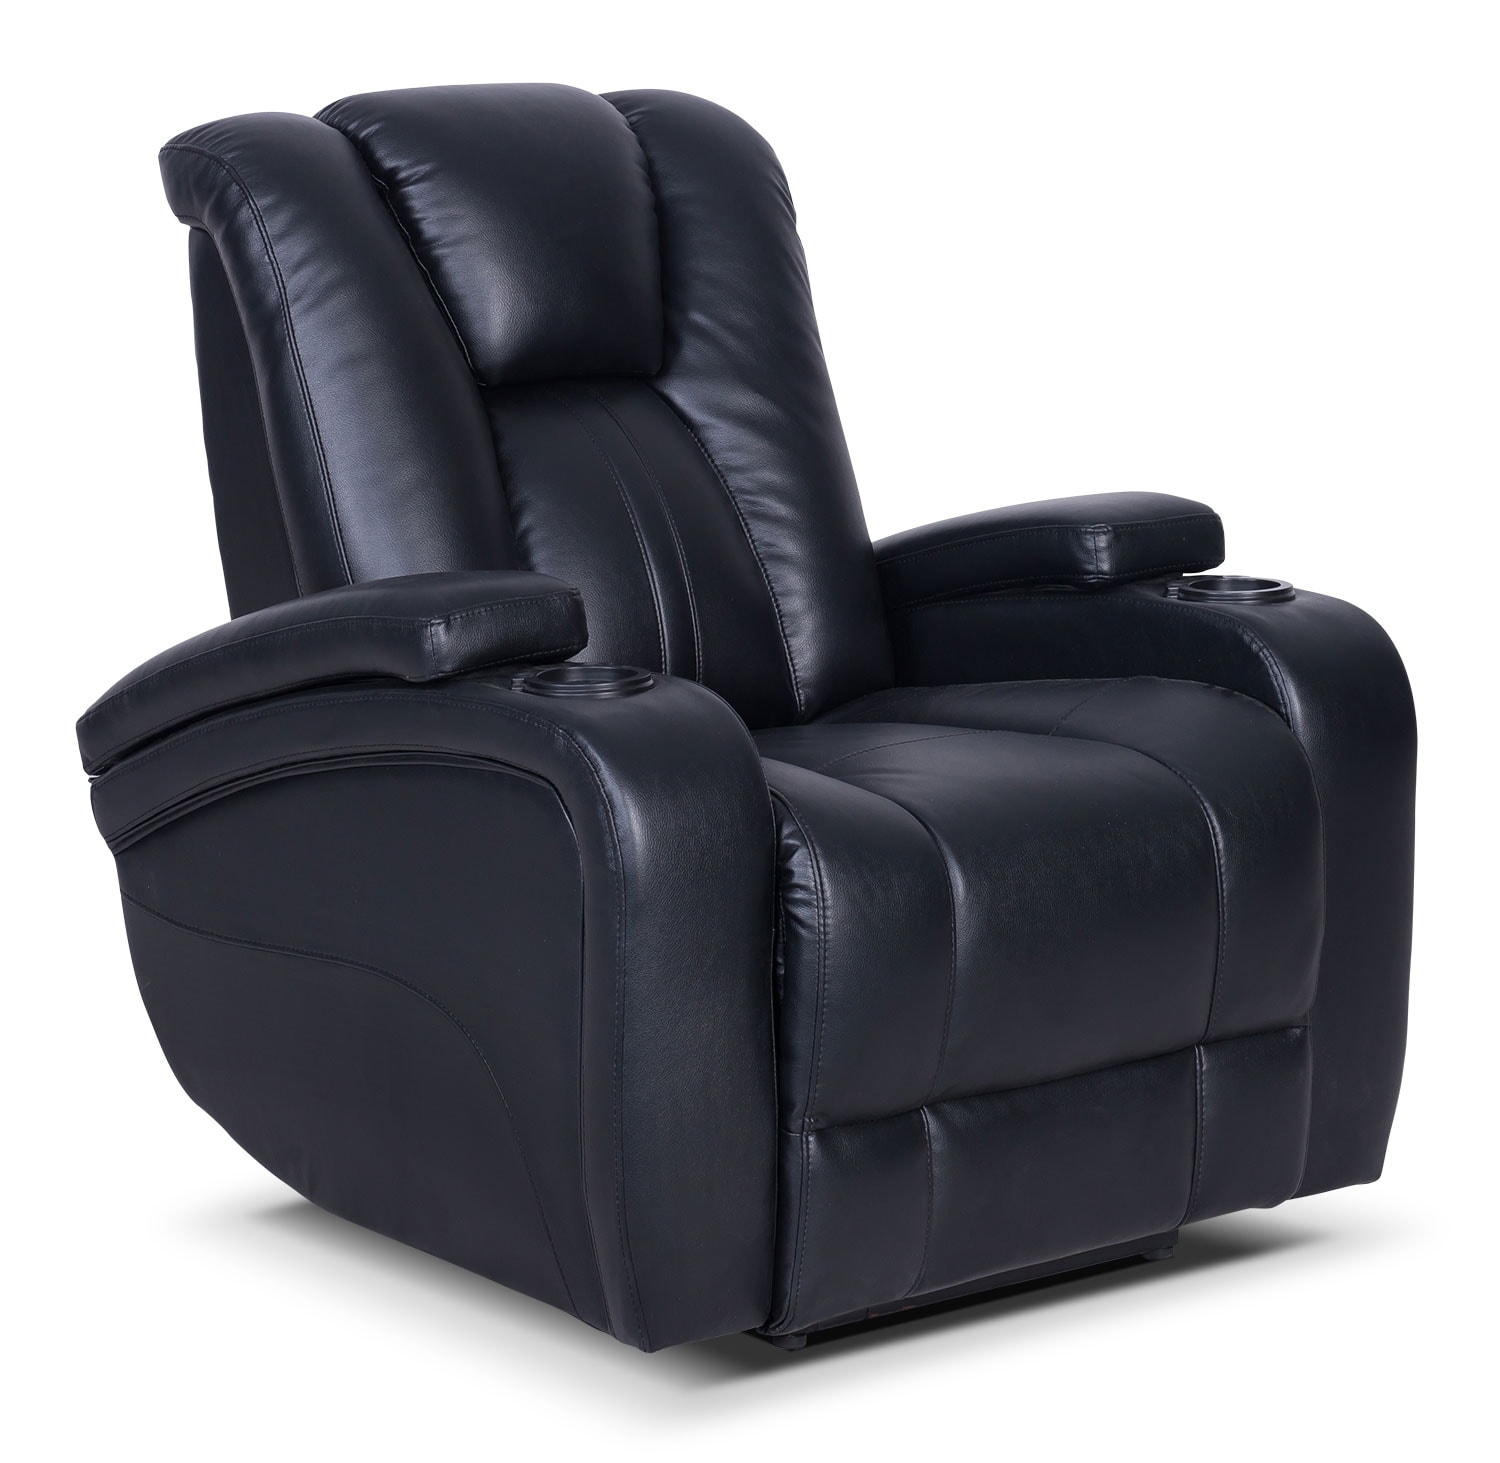 Zander Bonded Leather Power Reclining Chair Black The